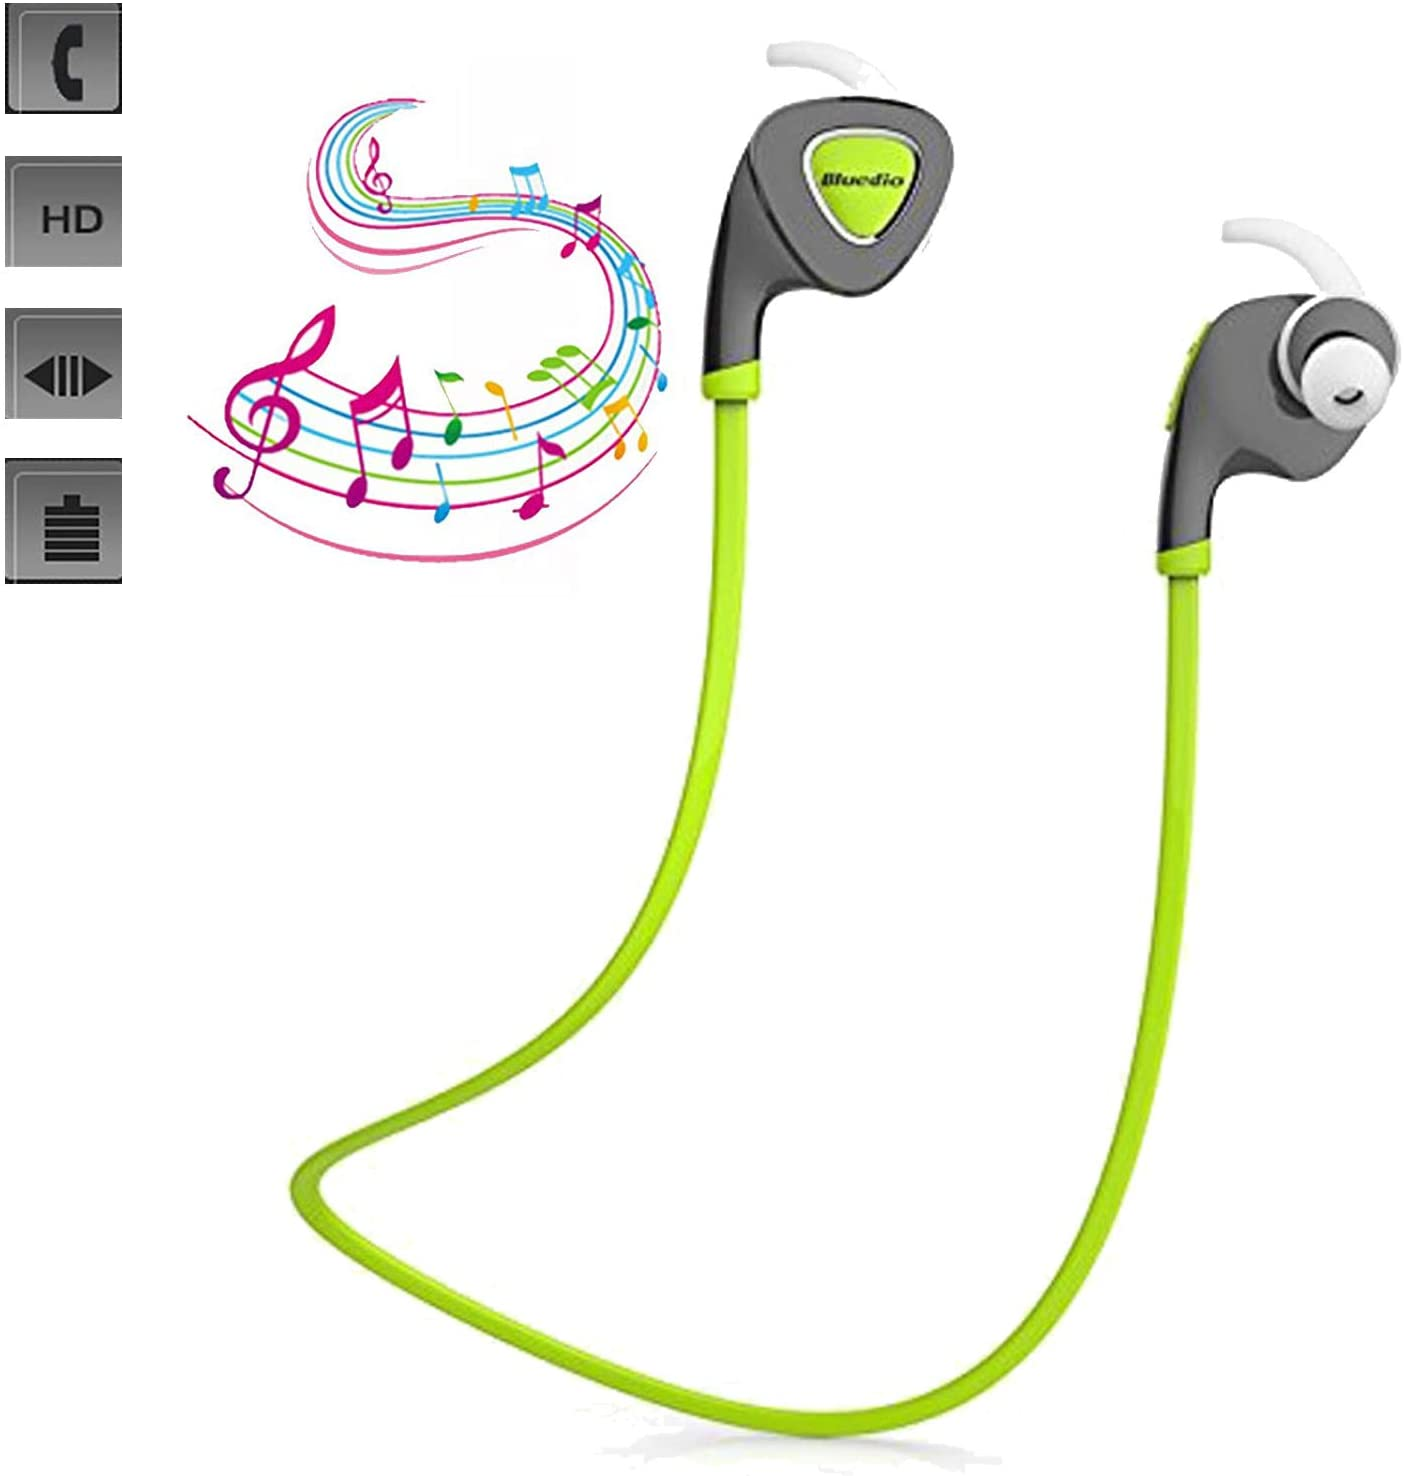 Wireless Headphones Stereo Headset Sport Running Gym Earphones with Mic Handsfree Earbuds Sweatproof Compatible with Android iOS iPhone 11 8 7 6 6S Plus Samsung S9 S8 Tablet PC (Green)